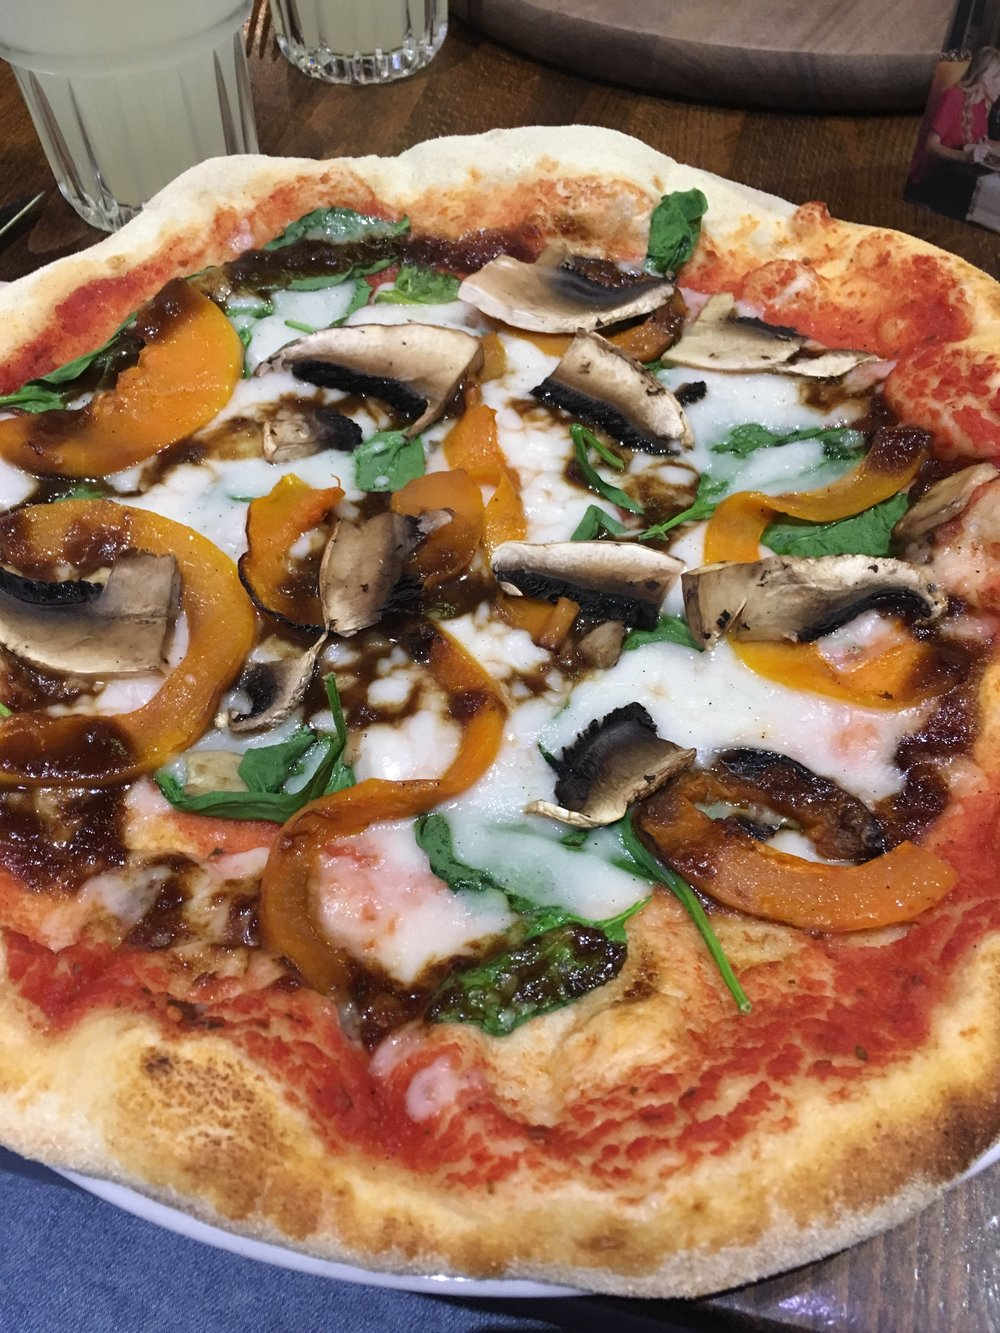 vegan pizza at zizzi